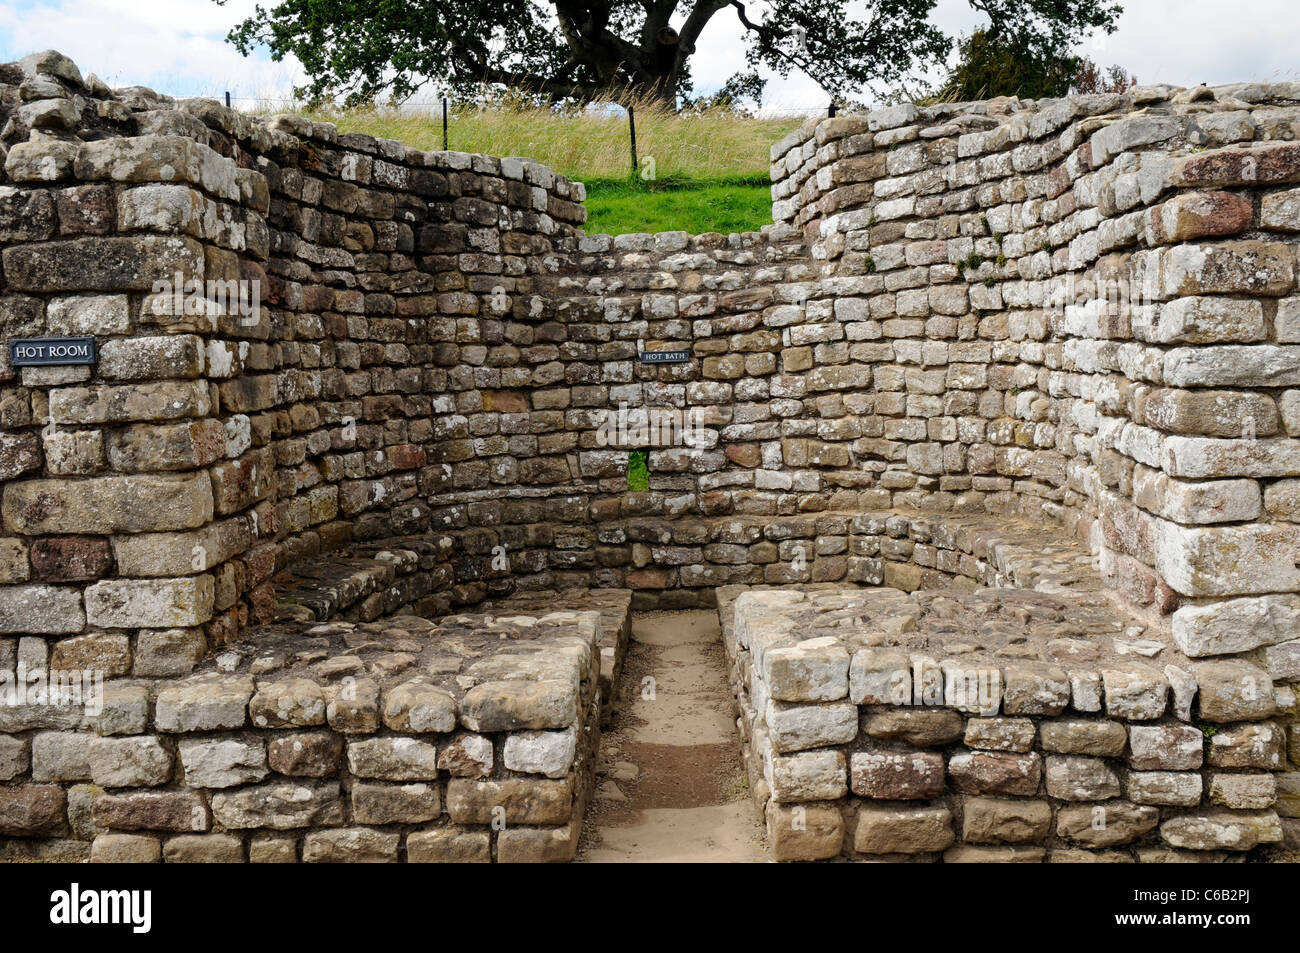 The warm room of Roman Bath House  ruins at Chesters Fort, on Hadrian's Wall, England. Stock Photo